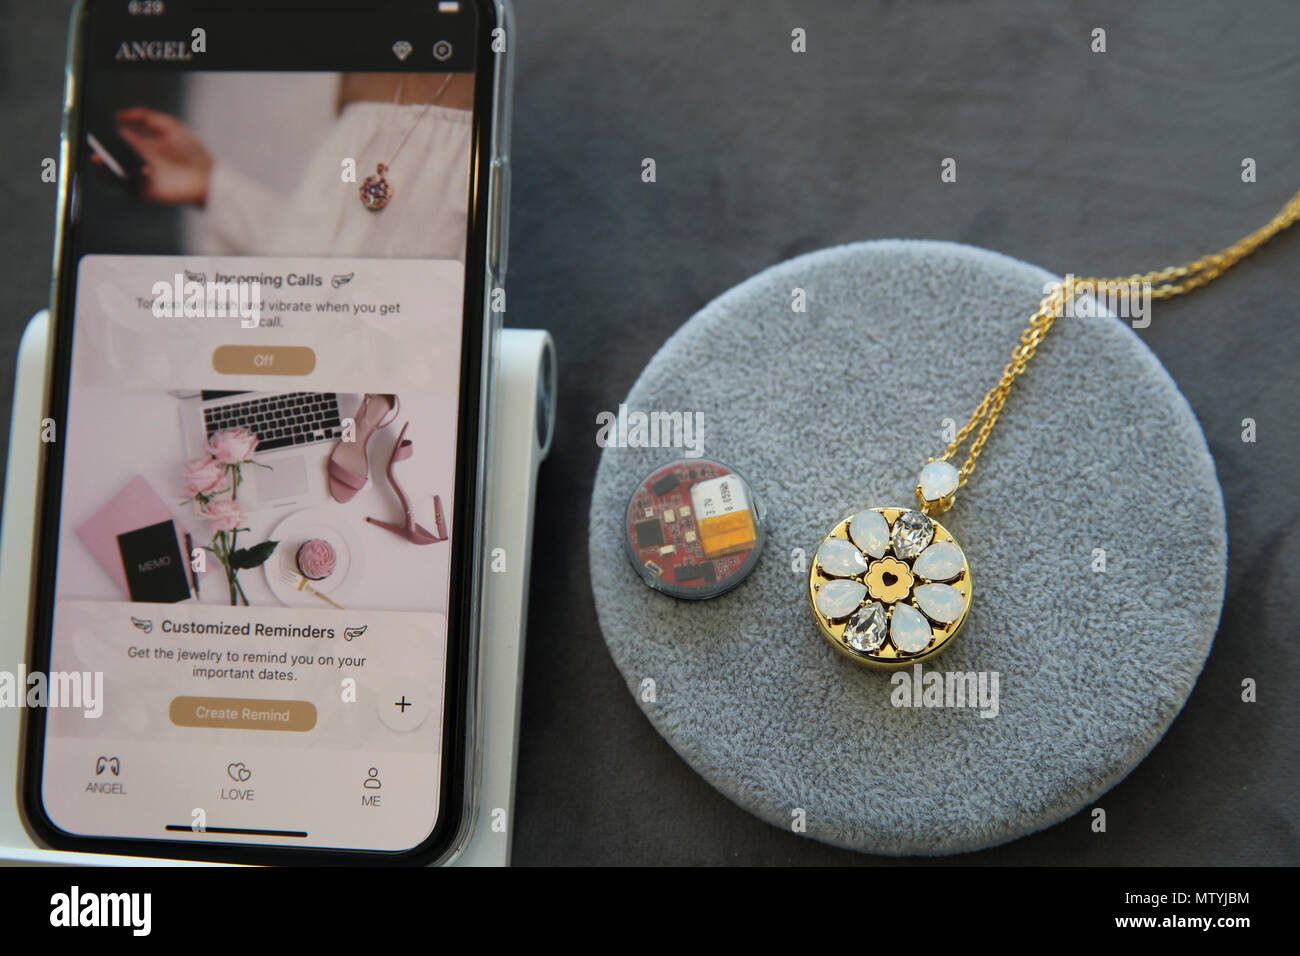 "New York, USA. 30th May, 2018. Photo taken on May 30, 2018 shows the ""Totwoo Love"" Kit in New York, the United States. China's innovative smart jewelry brand Totwoo launched its first plug-and-play jewelry tech maker kit in the United States on Wednesday. ""Totwoo Love"" Kit was jointly launched by the Beijing-based firm and the U.S. fashion tech company 360Fashion Network at the SAP Next-Gen Space at Hudson Yards in New York City on Wednesday evening. Credit: Wang Ying/Xinhua/Alamy Live News Stock Photo"